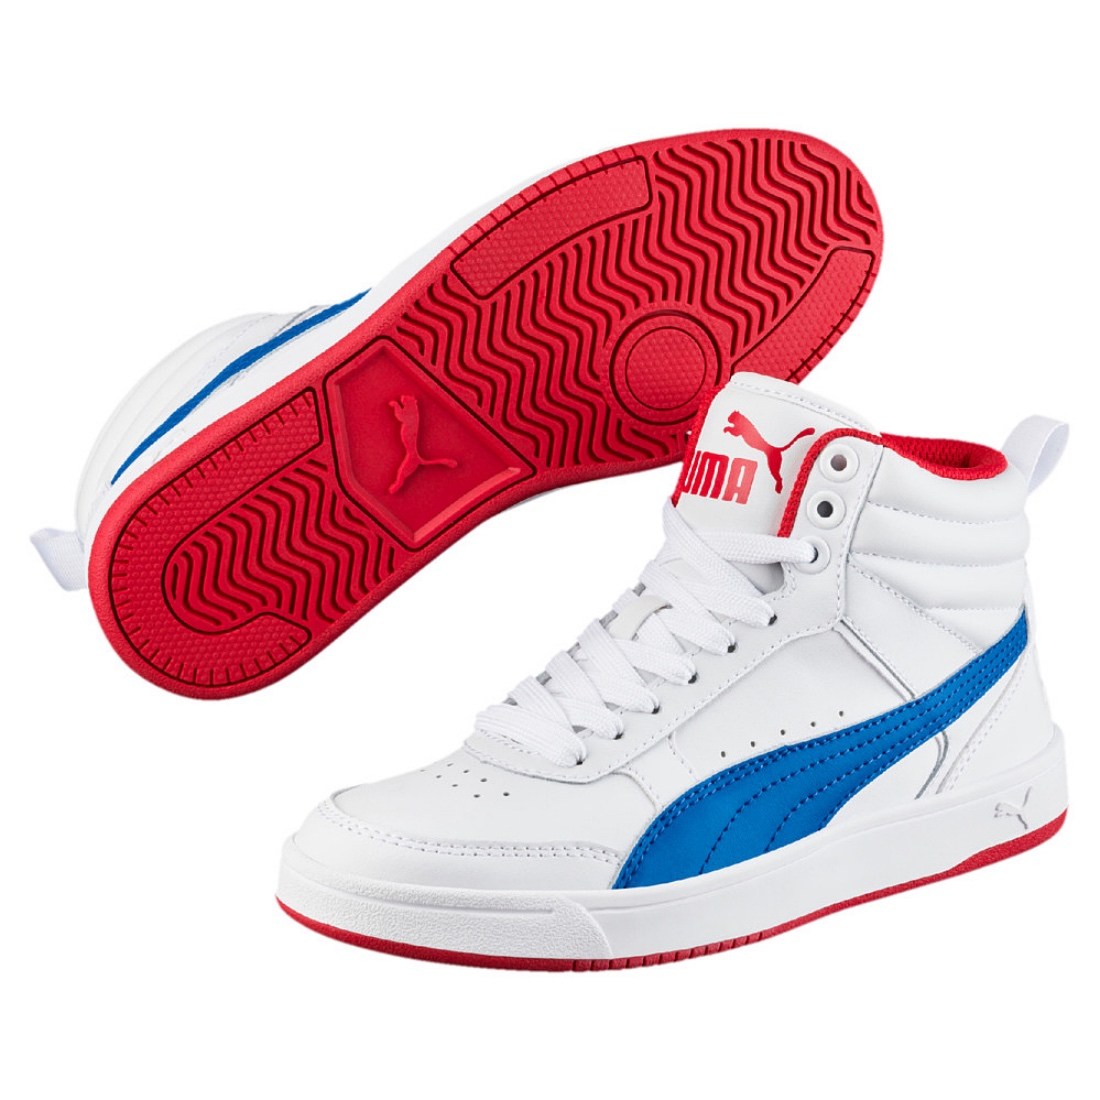 Details about Puma Rebound Street v2 L Jr mid Shoes Trainers 363913 White Blue Red Sale